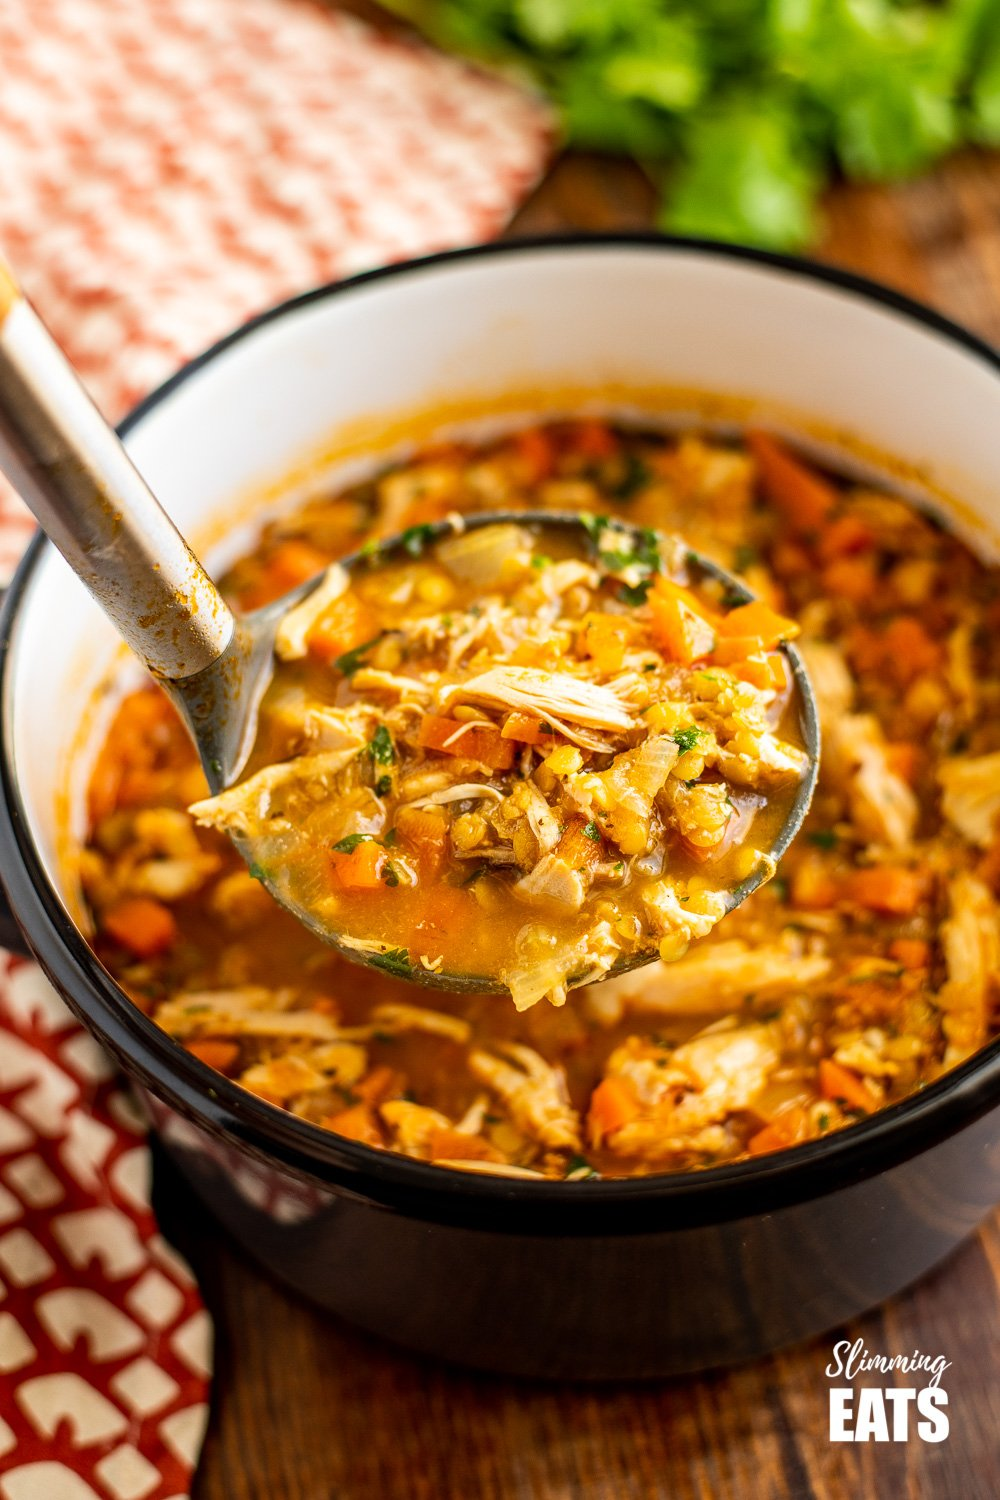 ladle of chicken and lentil soup from saucepan